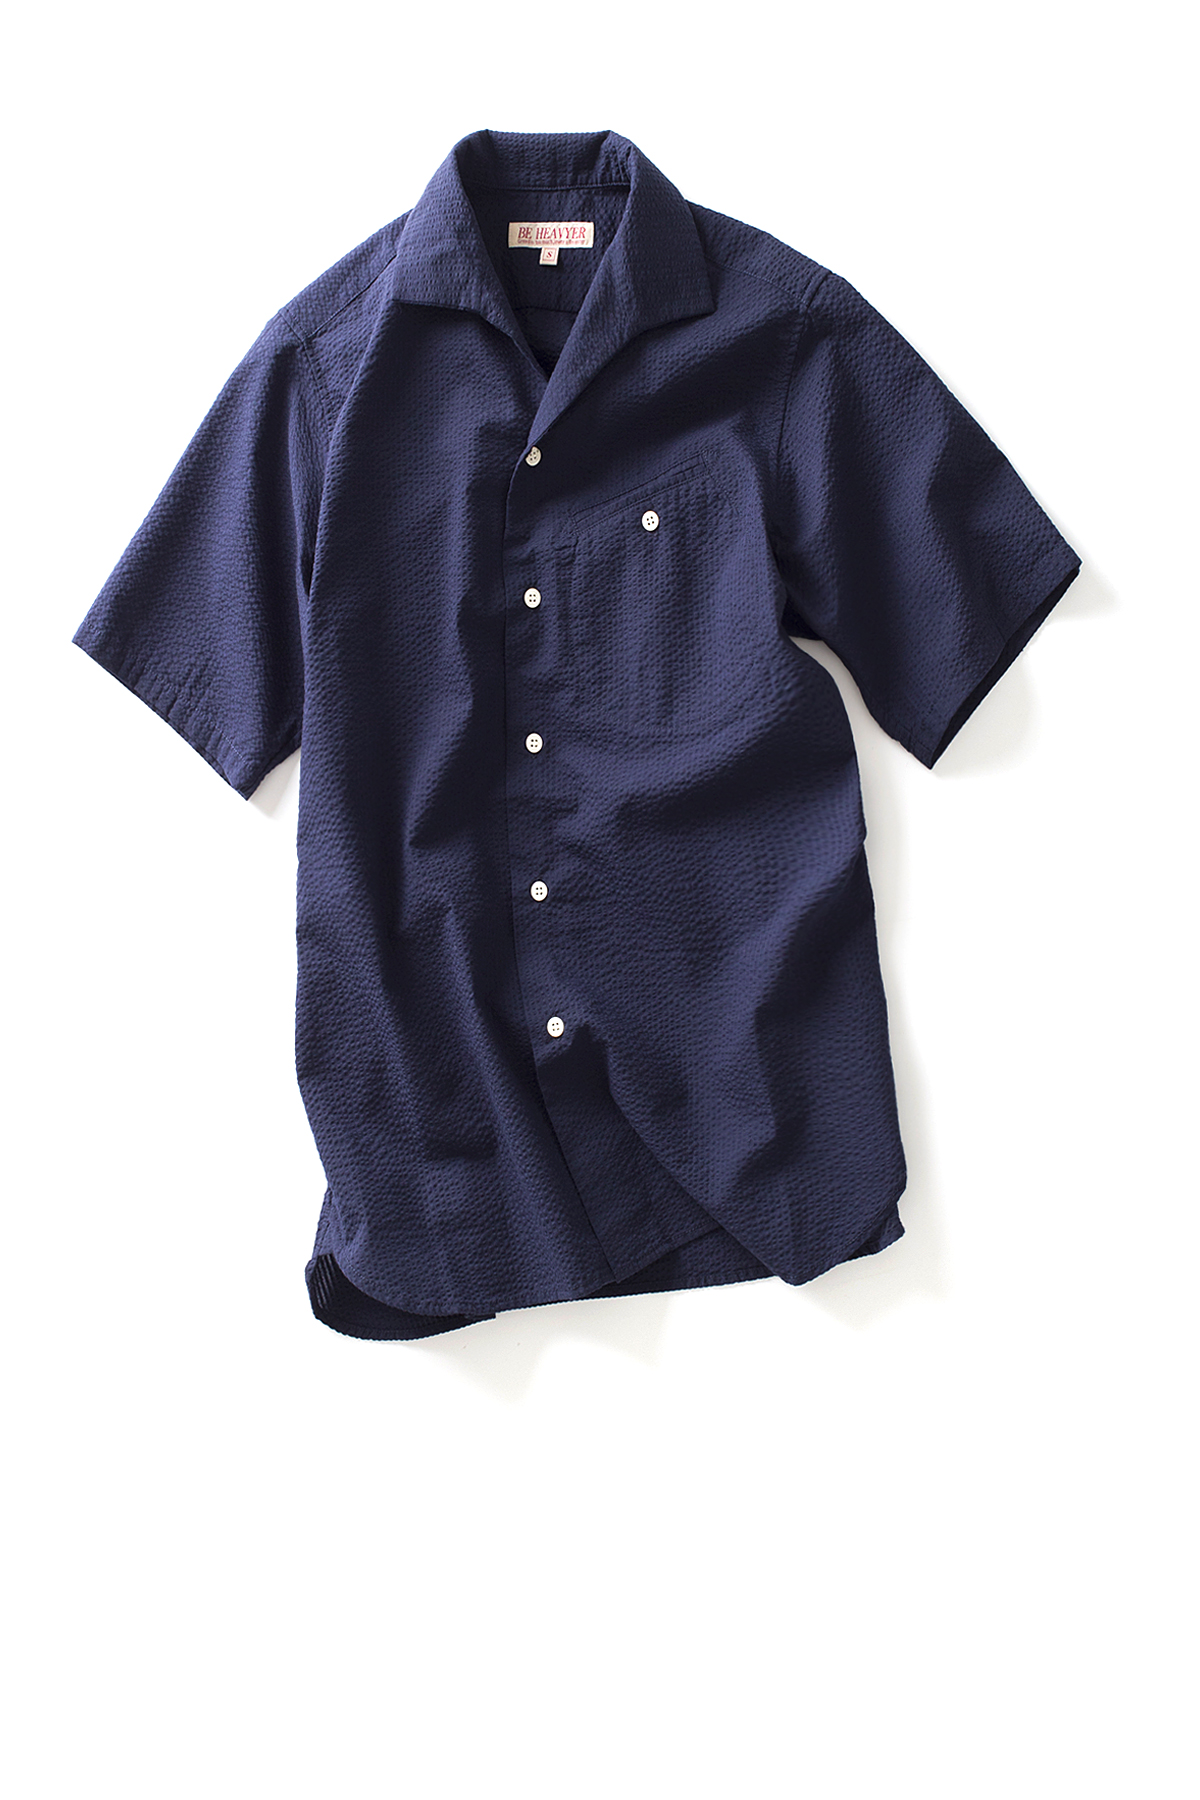 Be Heavyer : Flight Shirt (Navy)